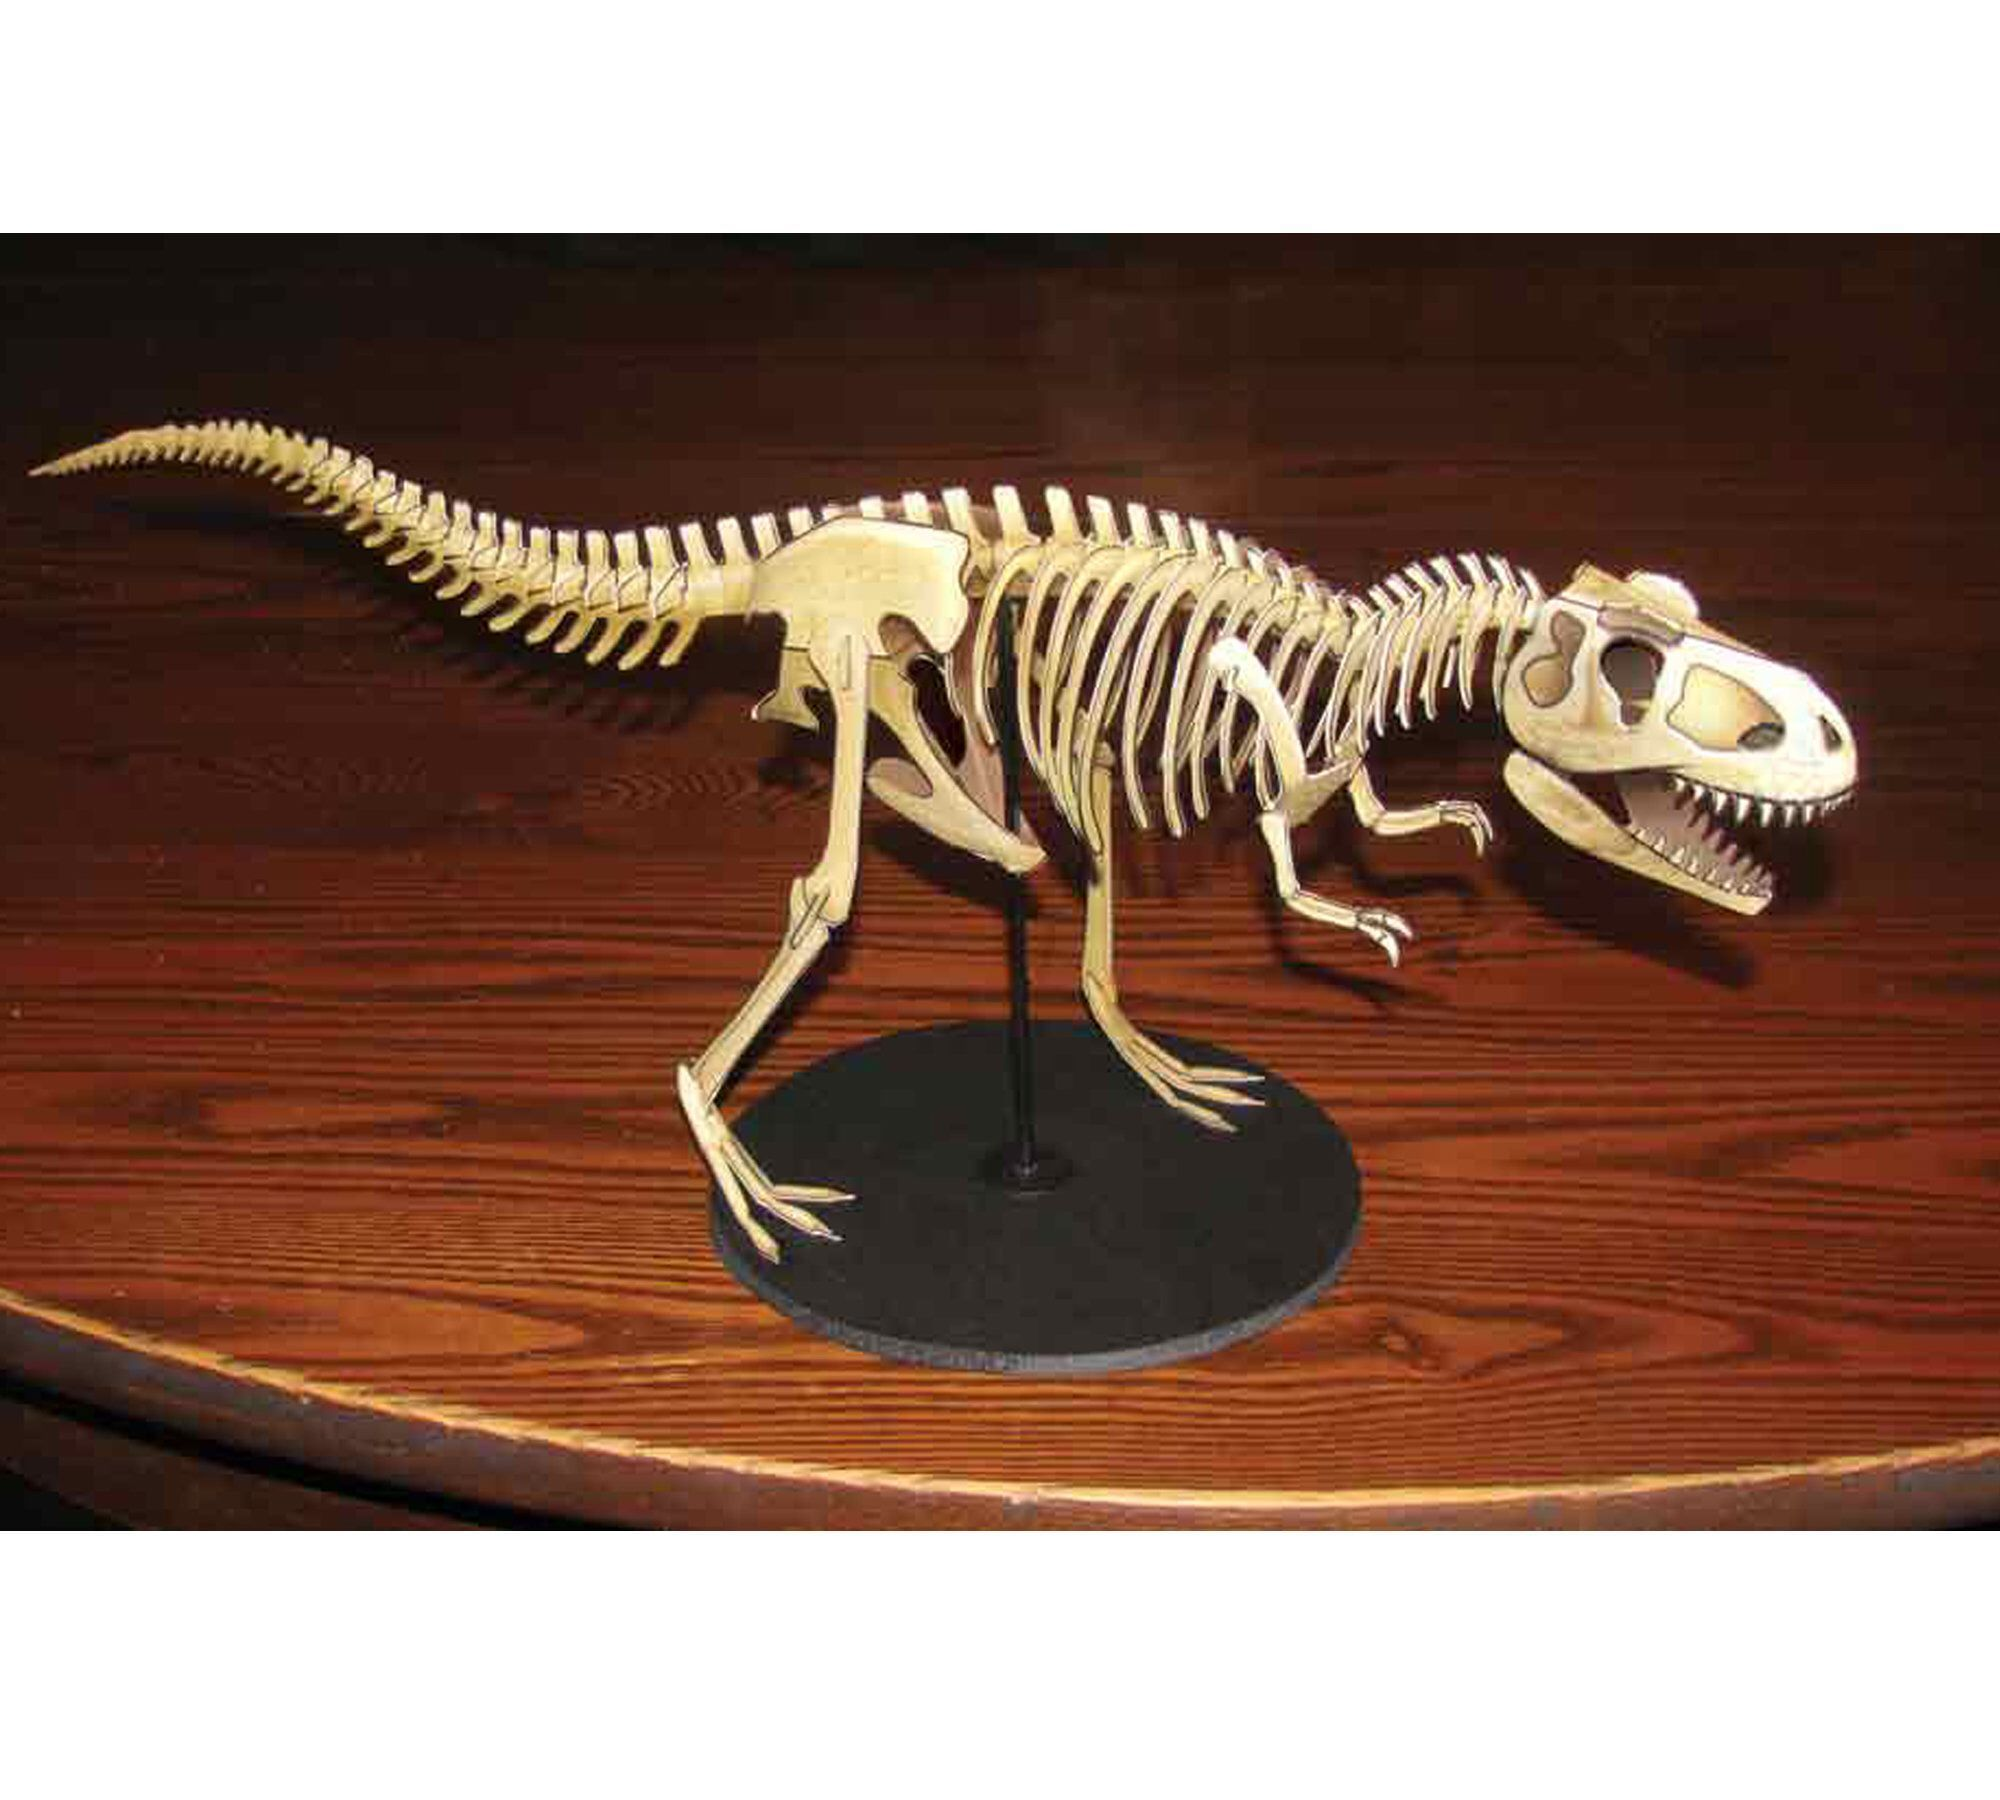 T-Rex, T-Rex skeleton, paper dinosaur model, papercraft dinosaur #historyofdinosaurs Excited to share the latest addition to my #etsy shop: T-Rex, T-Rex skeleton, paper dinosaur model, papercraft dinosaur #historyofdinosaurs T-Rex, T-Rex skeleton, paper dinosaur model, papercraft dinosaur #historyofdinosaurs Excited to share the latest addition to my #etsy shop: T-Rex, T-Rex skeleton, paper dinosaur model, papercraft dinosaur #historyofdinosaurs